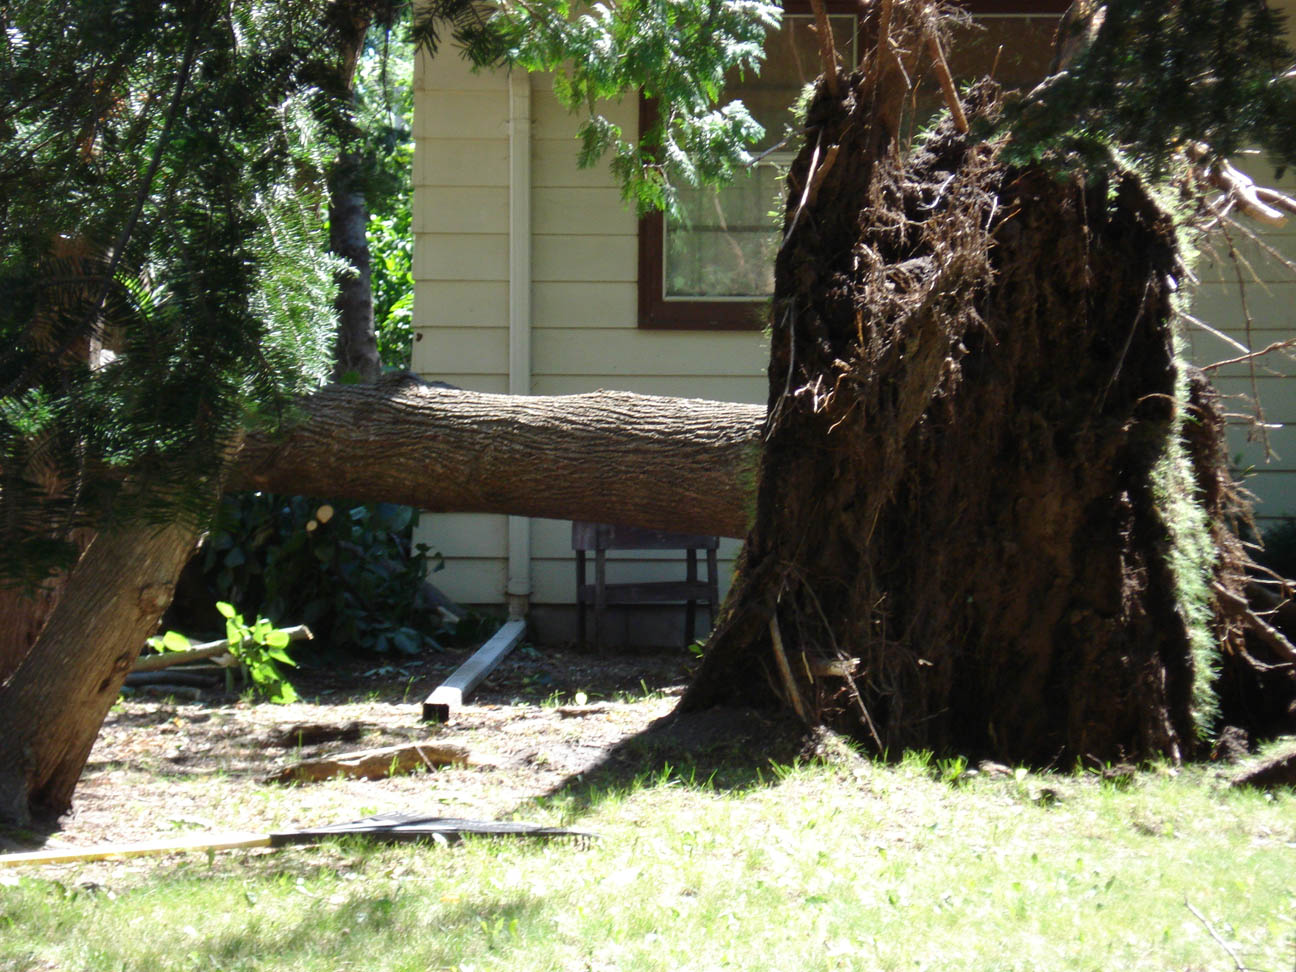 Tree uprooted, west side of Little Falls, MN, July 12, 2008